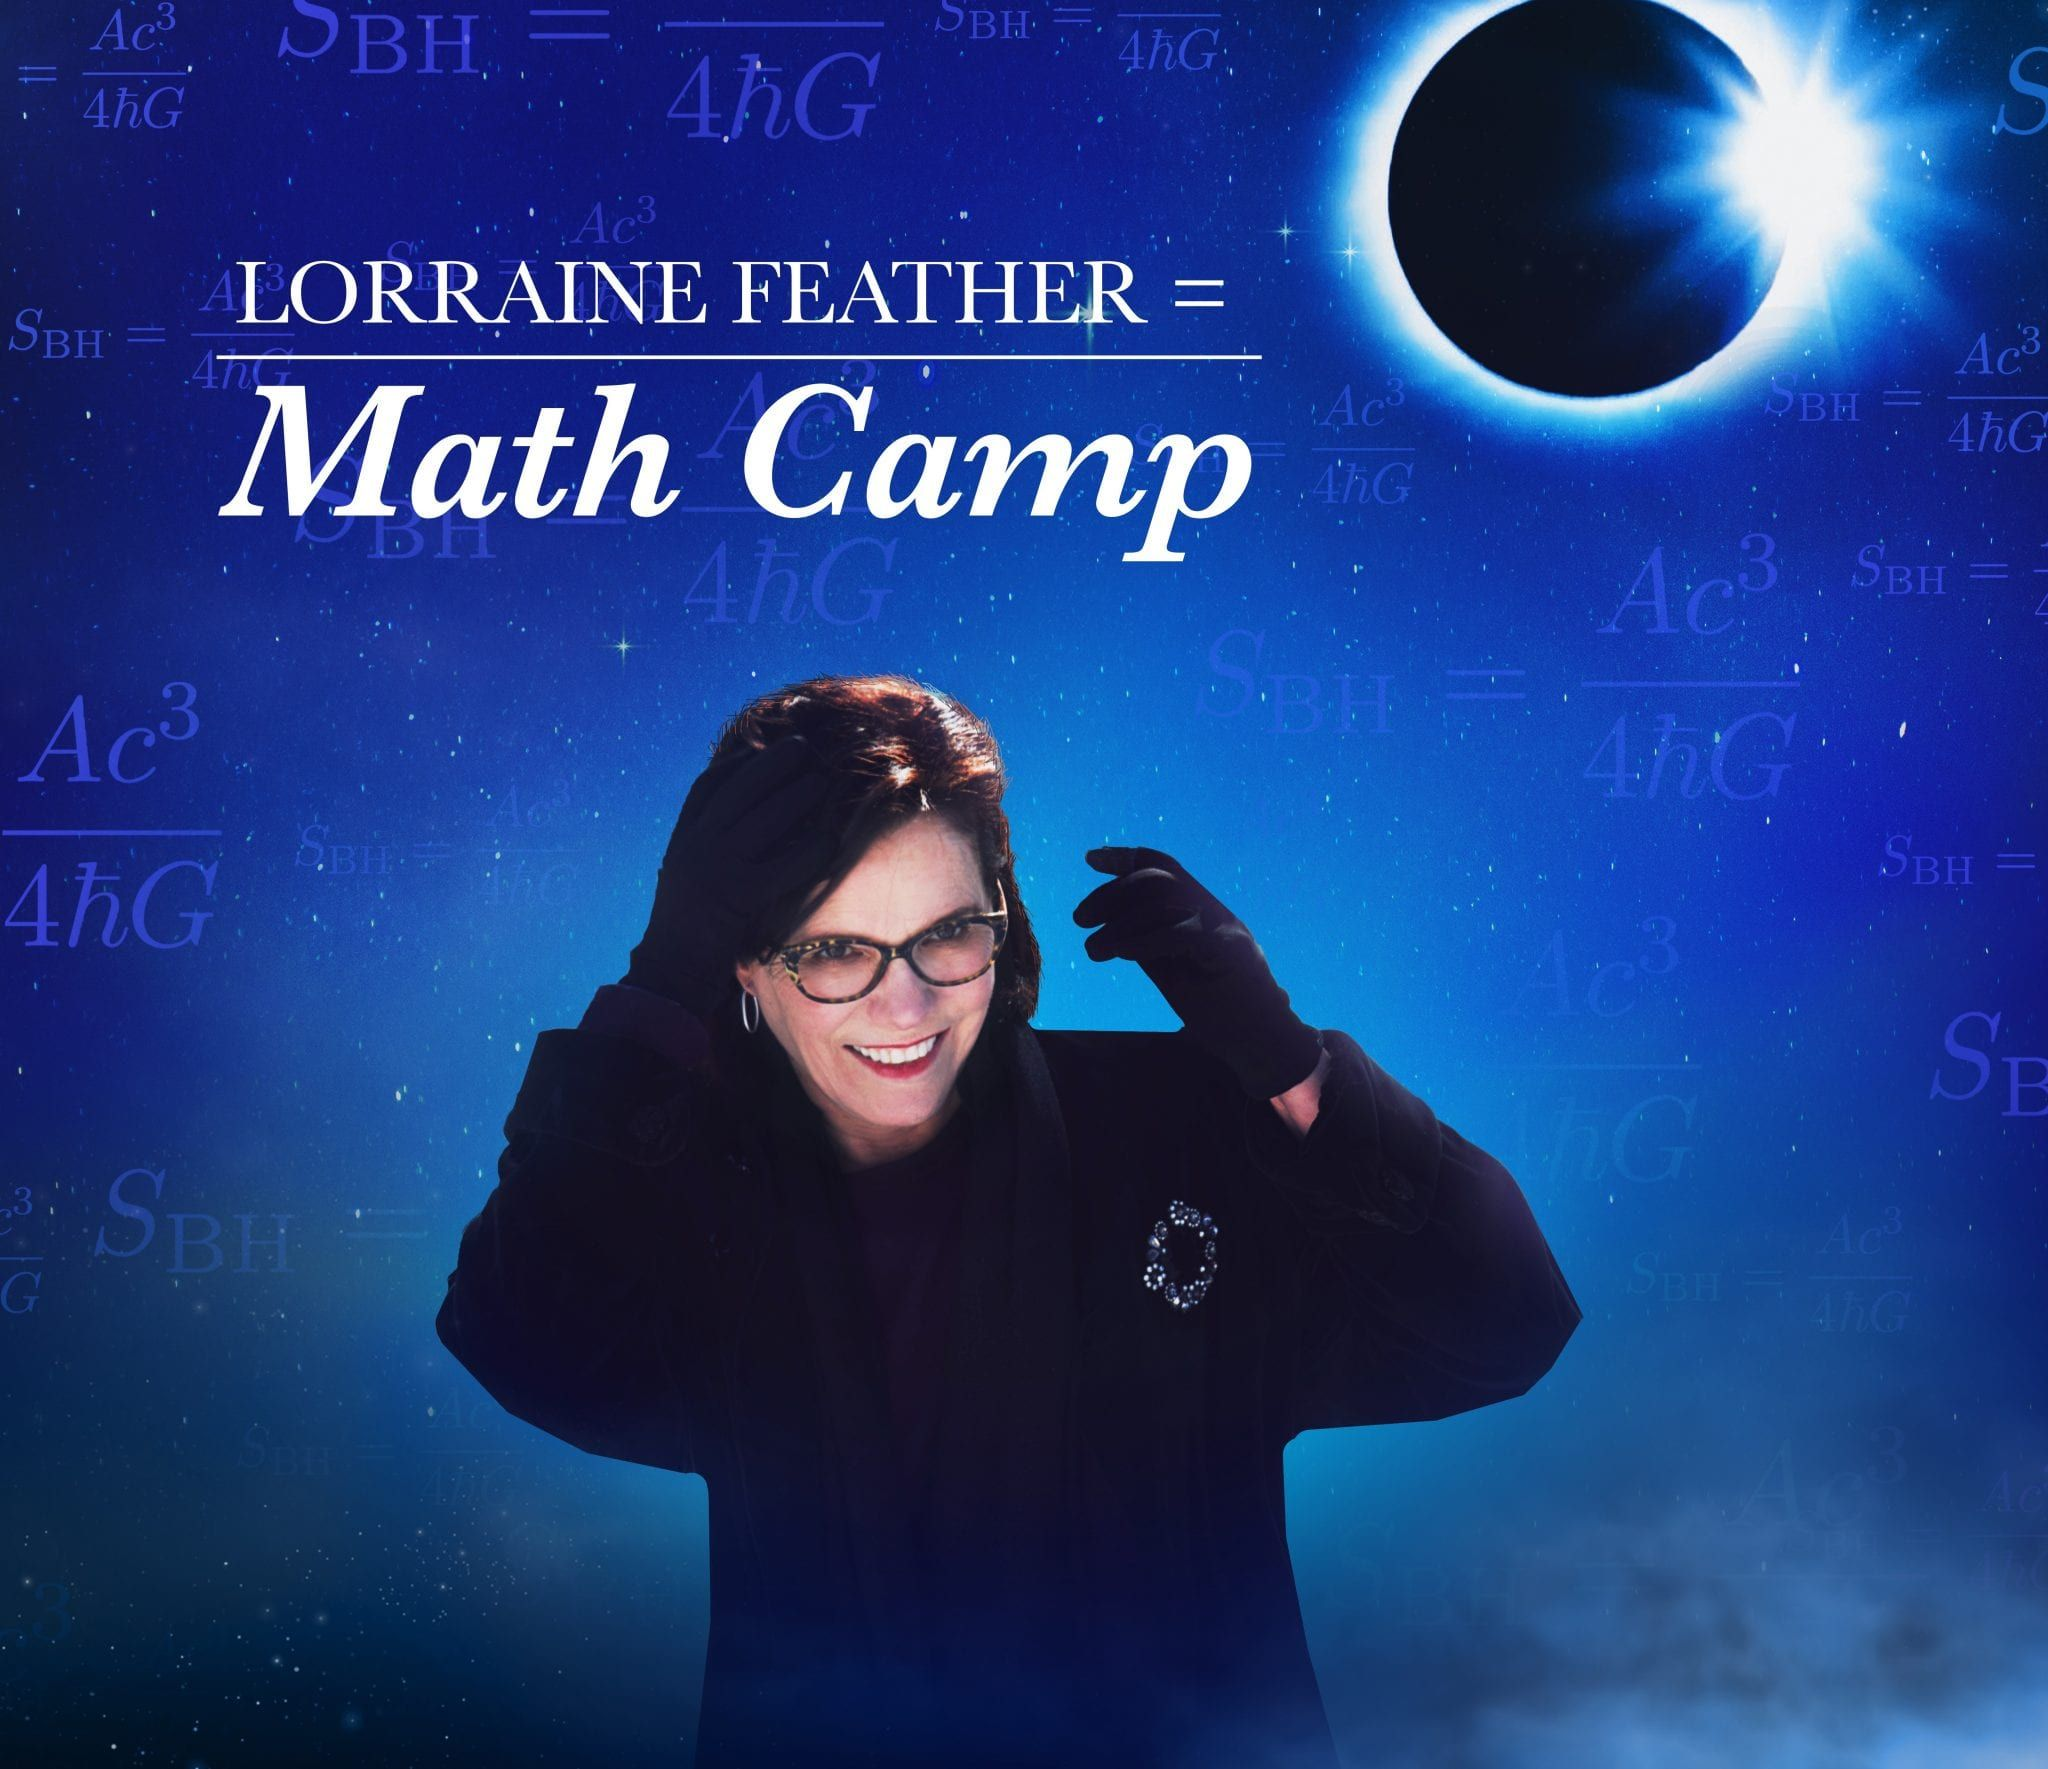 Math Camp Album cover